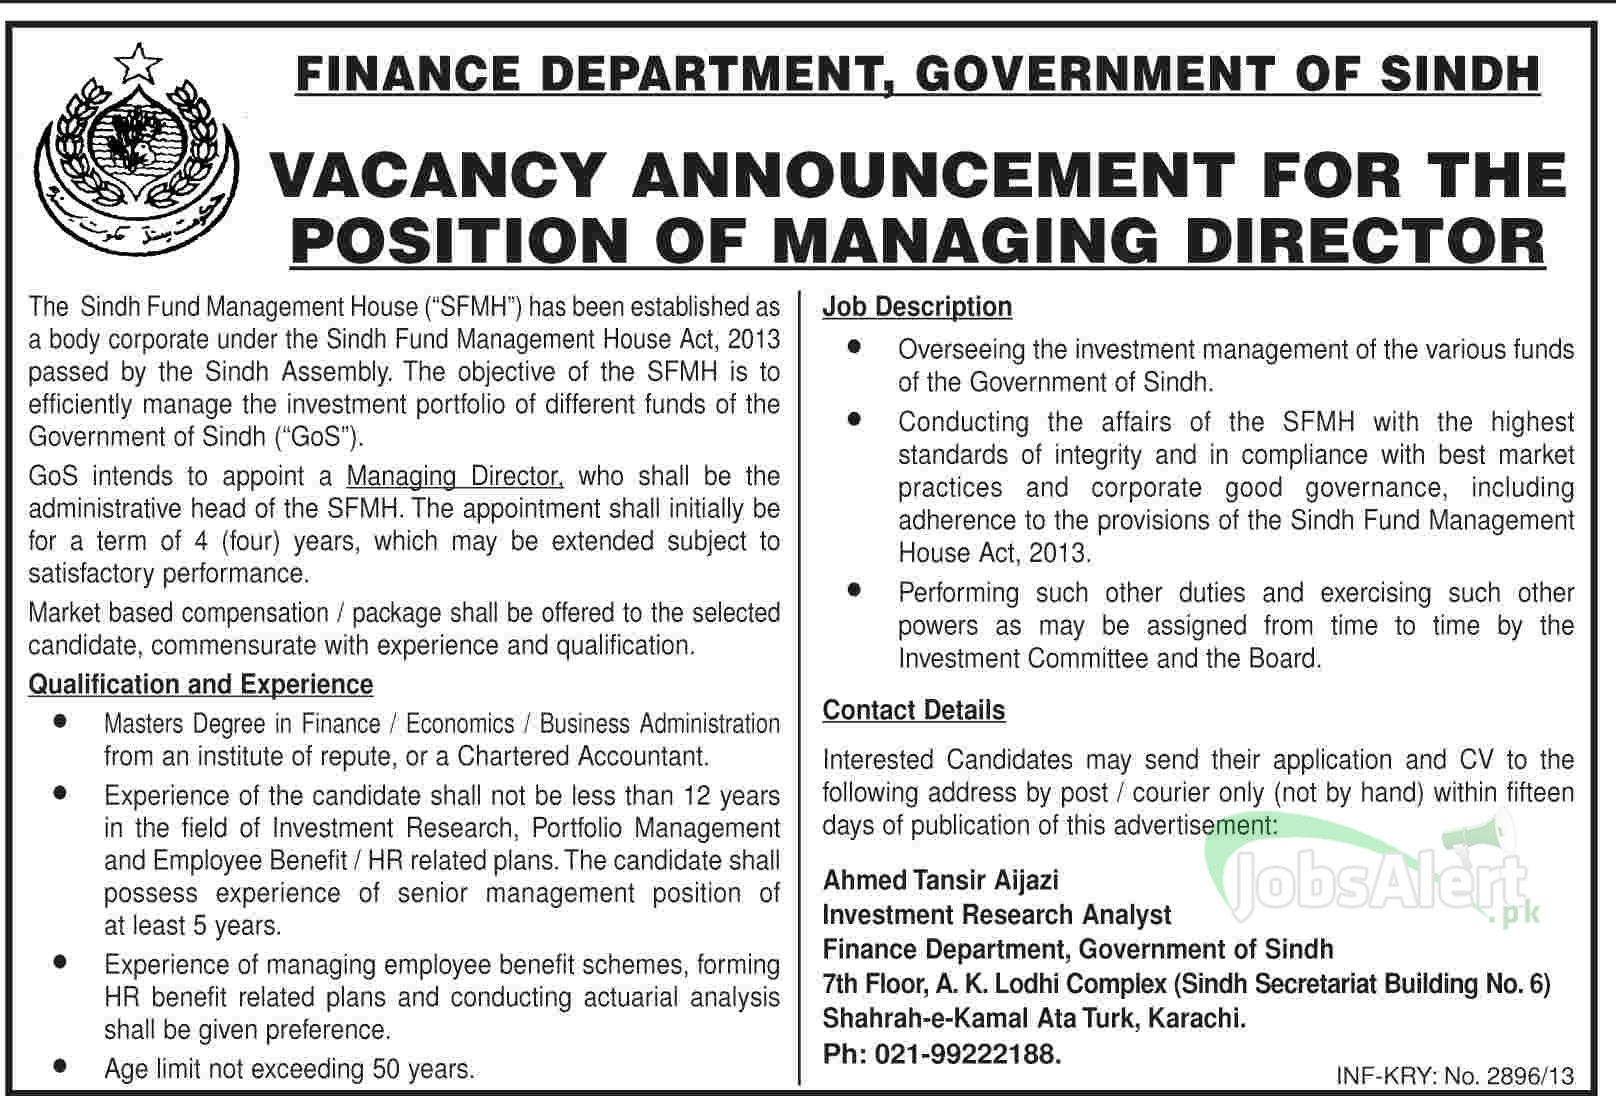 Jobs for Managing Director in Finance Department Government of Sindh